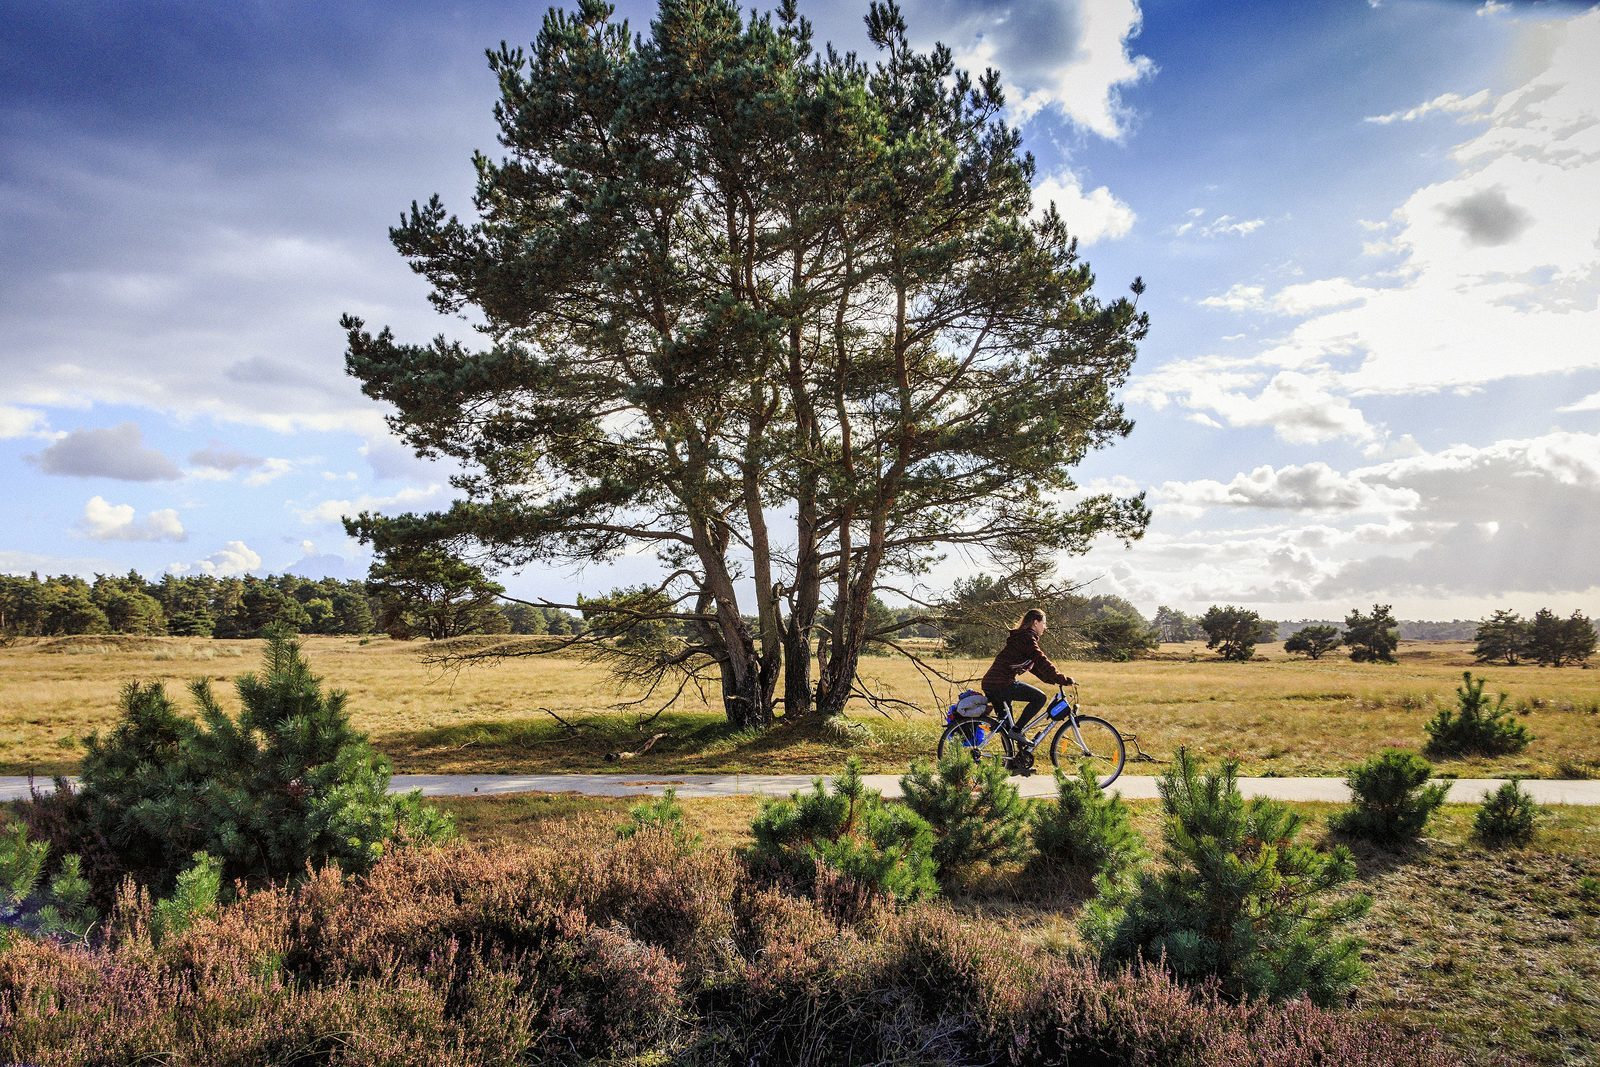 Cycling through De Hoge Veluwe National Park